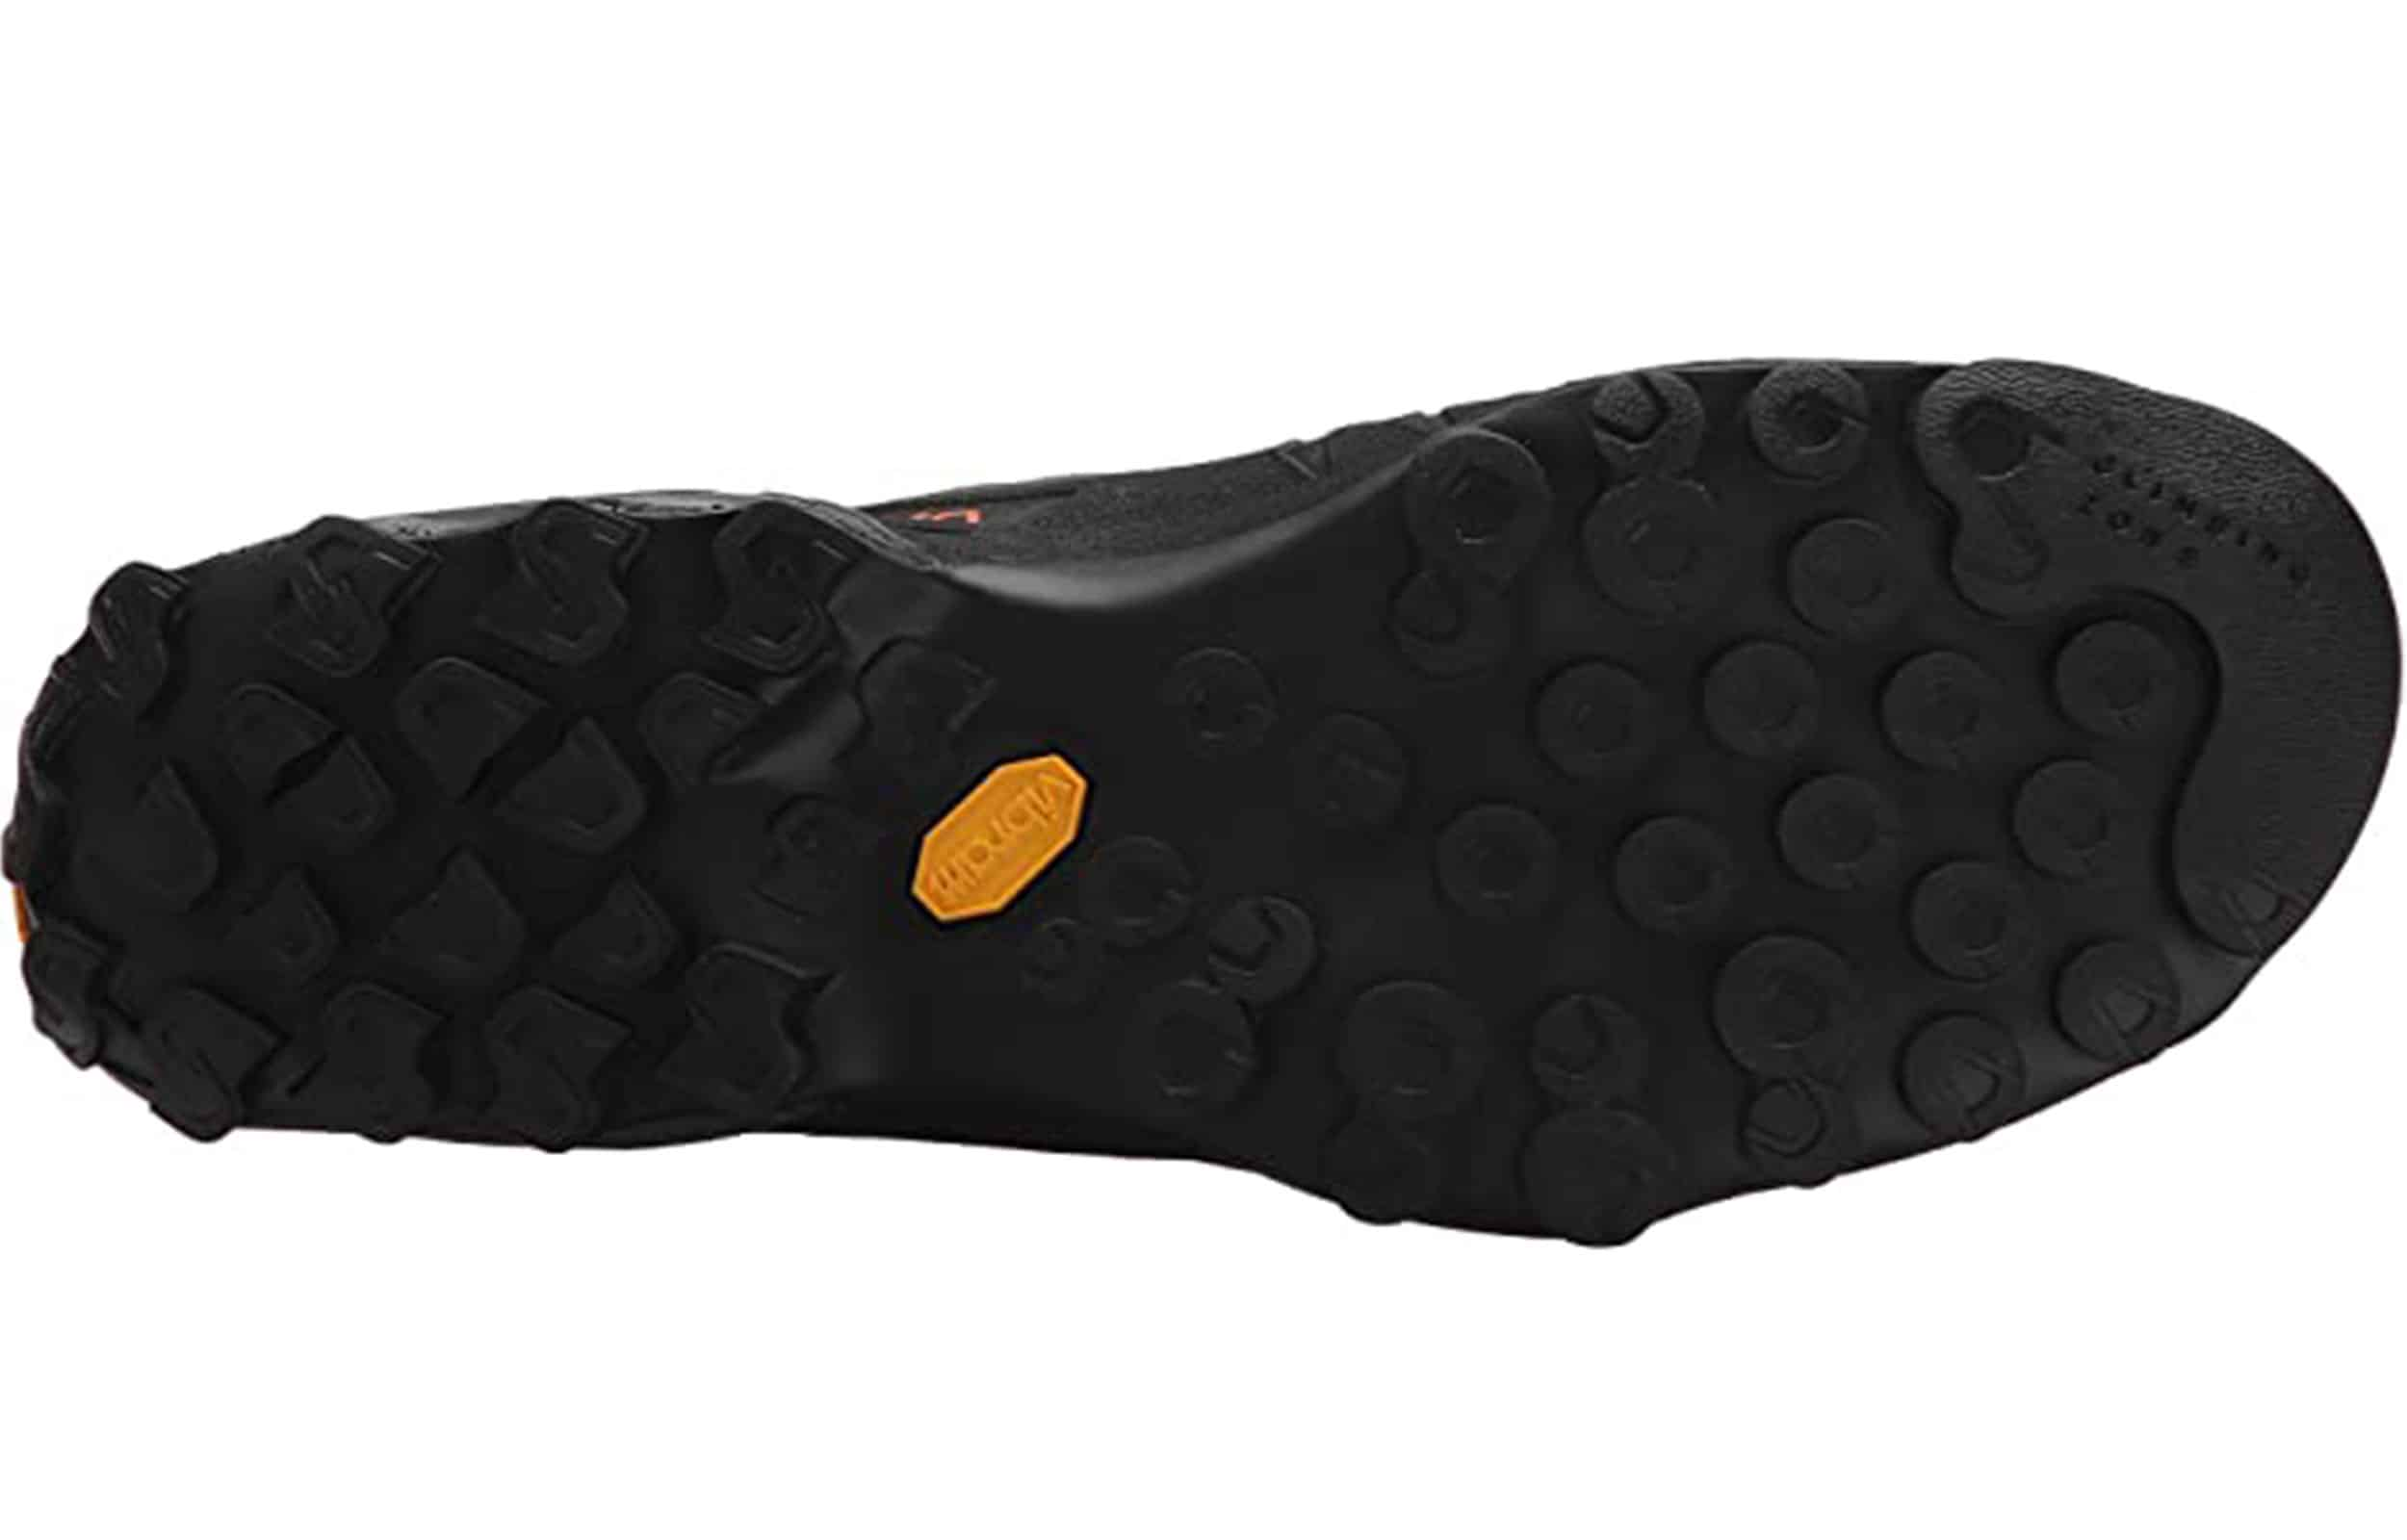 sole view of a la sportiva tx4 mid gtx hiking boots